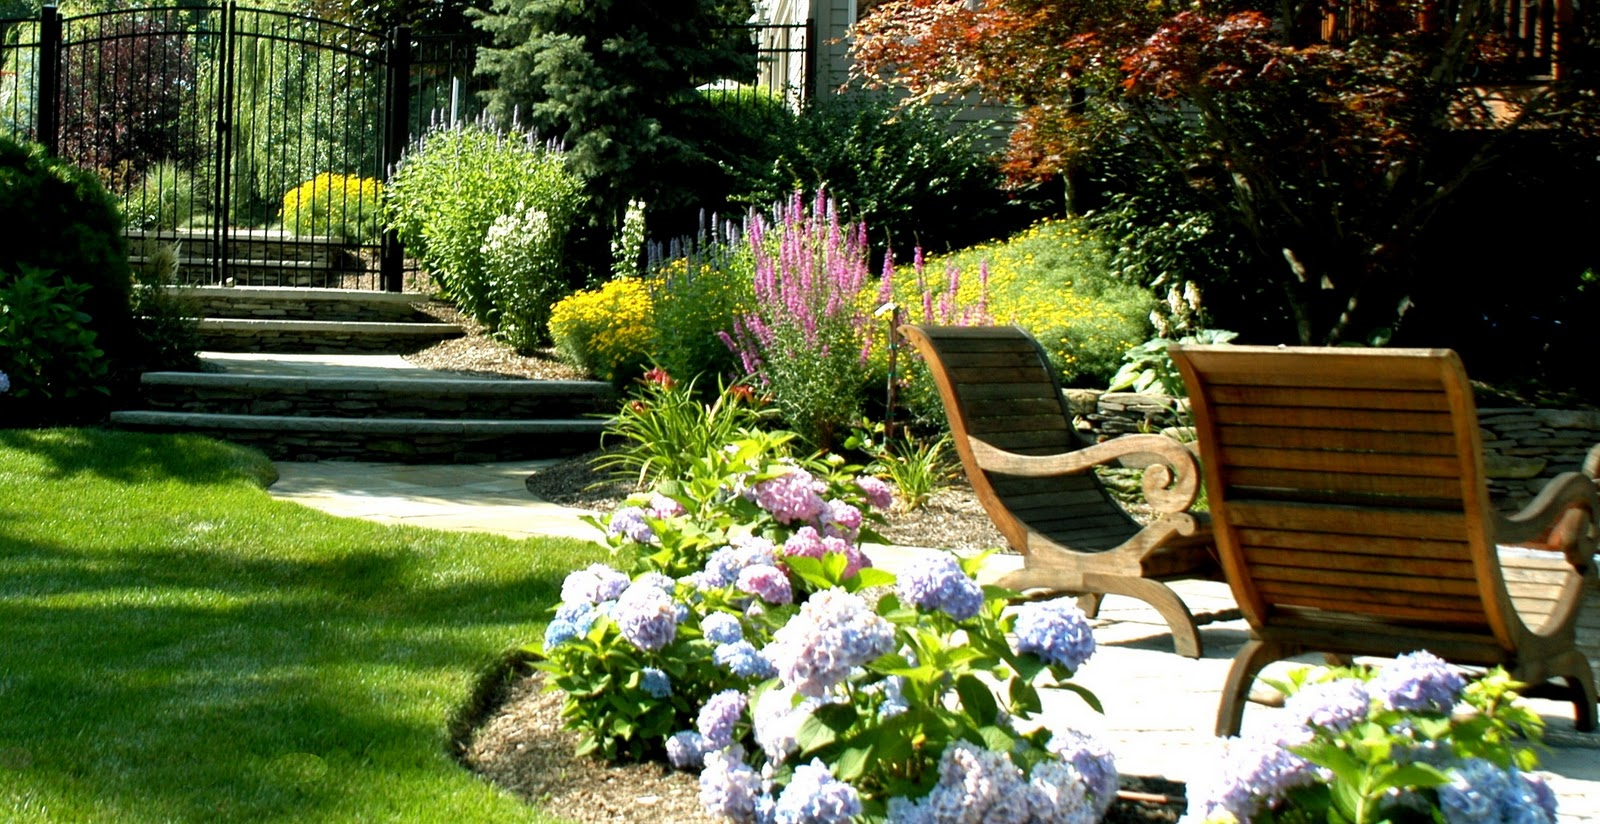 Hightechlandscapes new jersey landscape design for Latest garden design